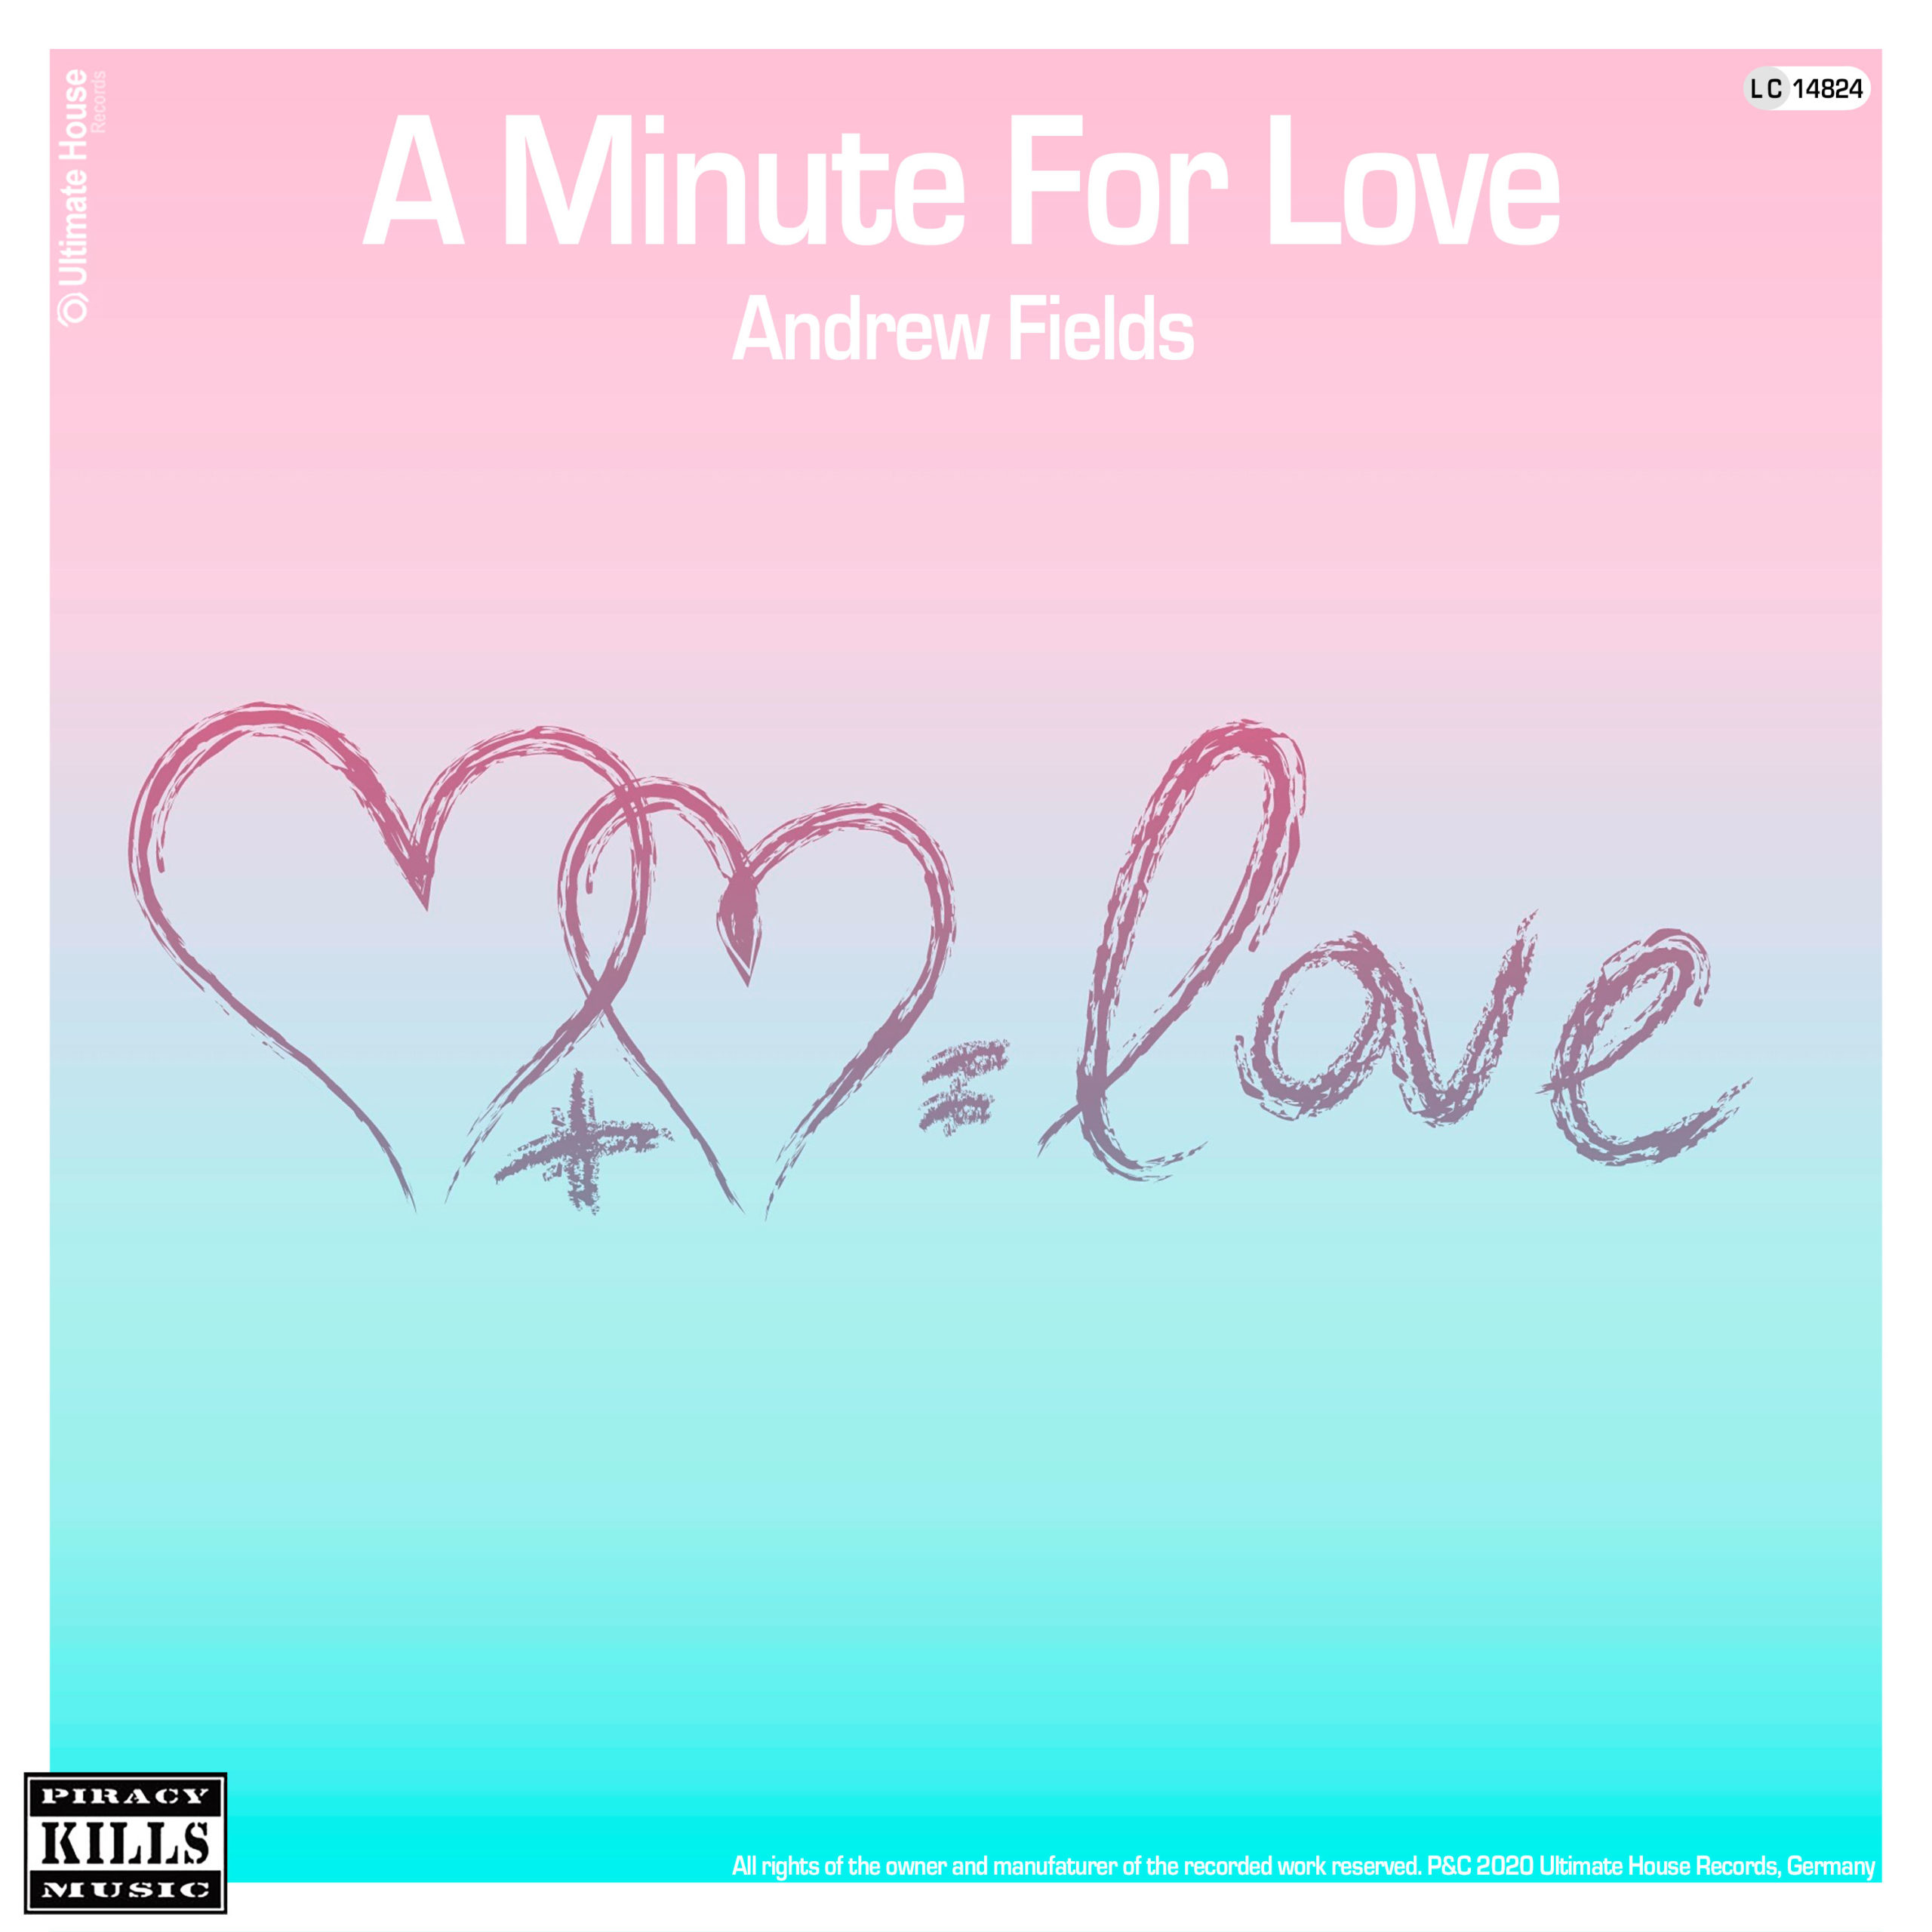 https://www.ultimate-house-records.com/wp-content/uploads/2020/05/140-Andrew_Fields-A_Minute_For_Love-Cover_3000px_web-scaled.jpg